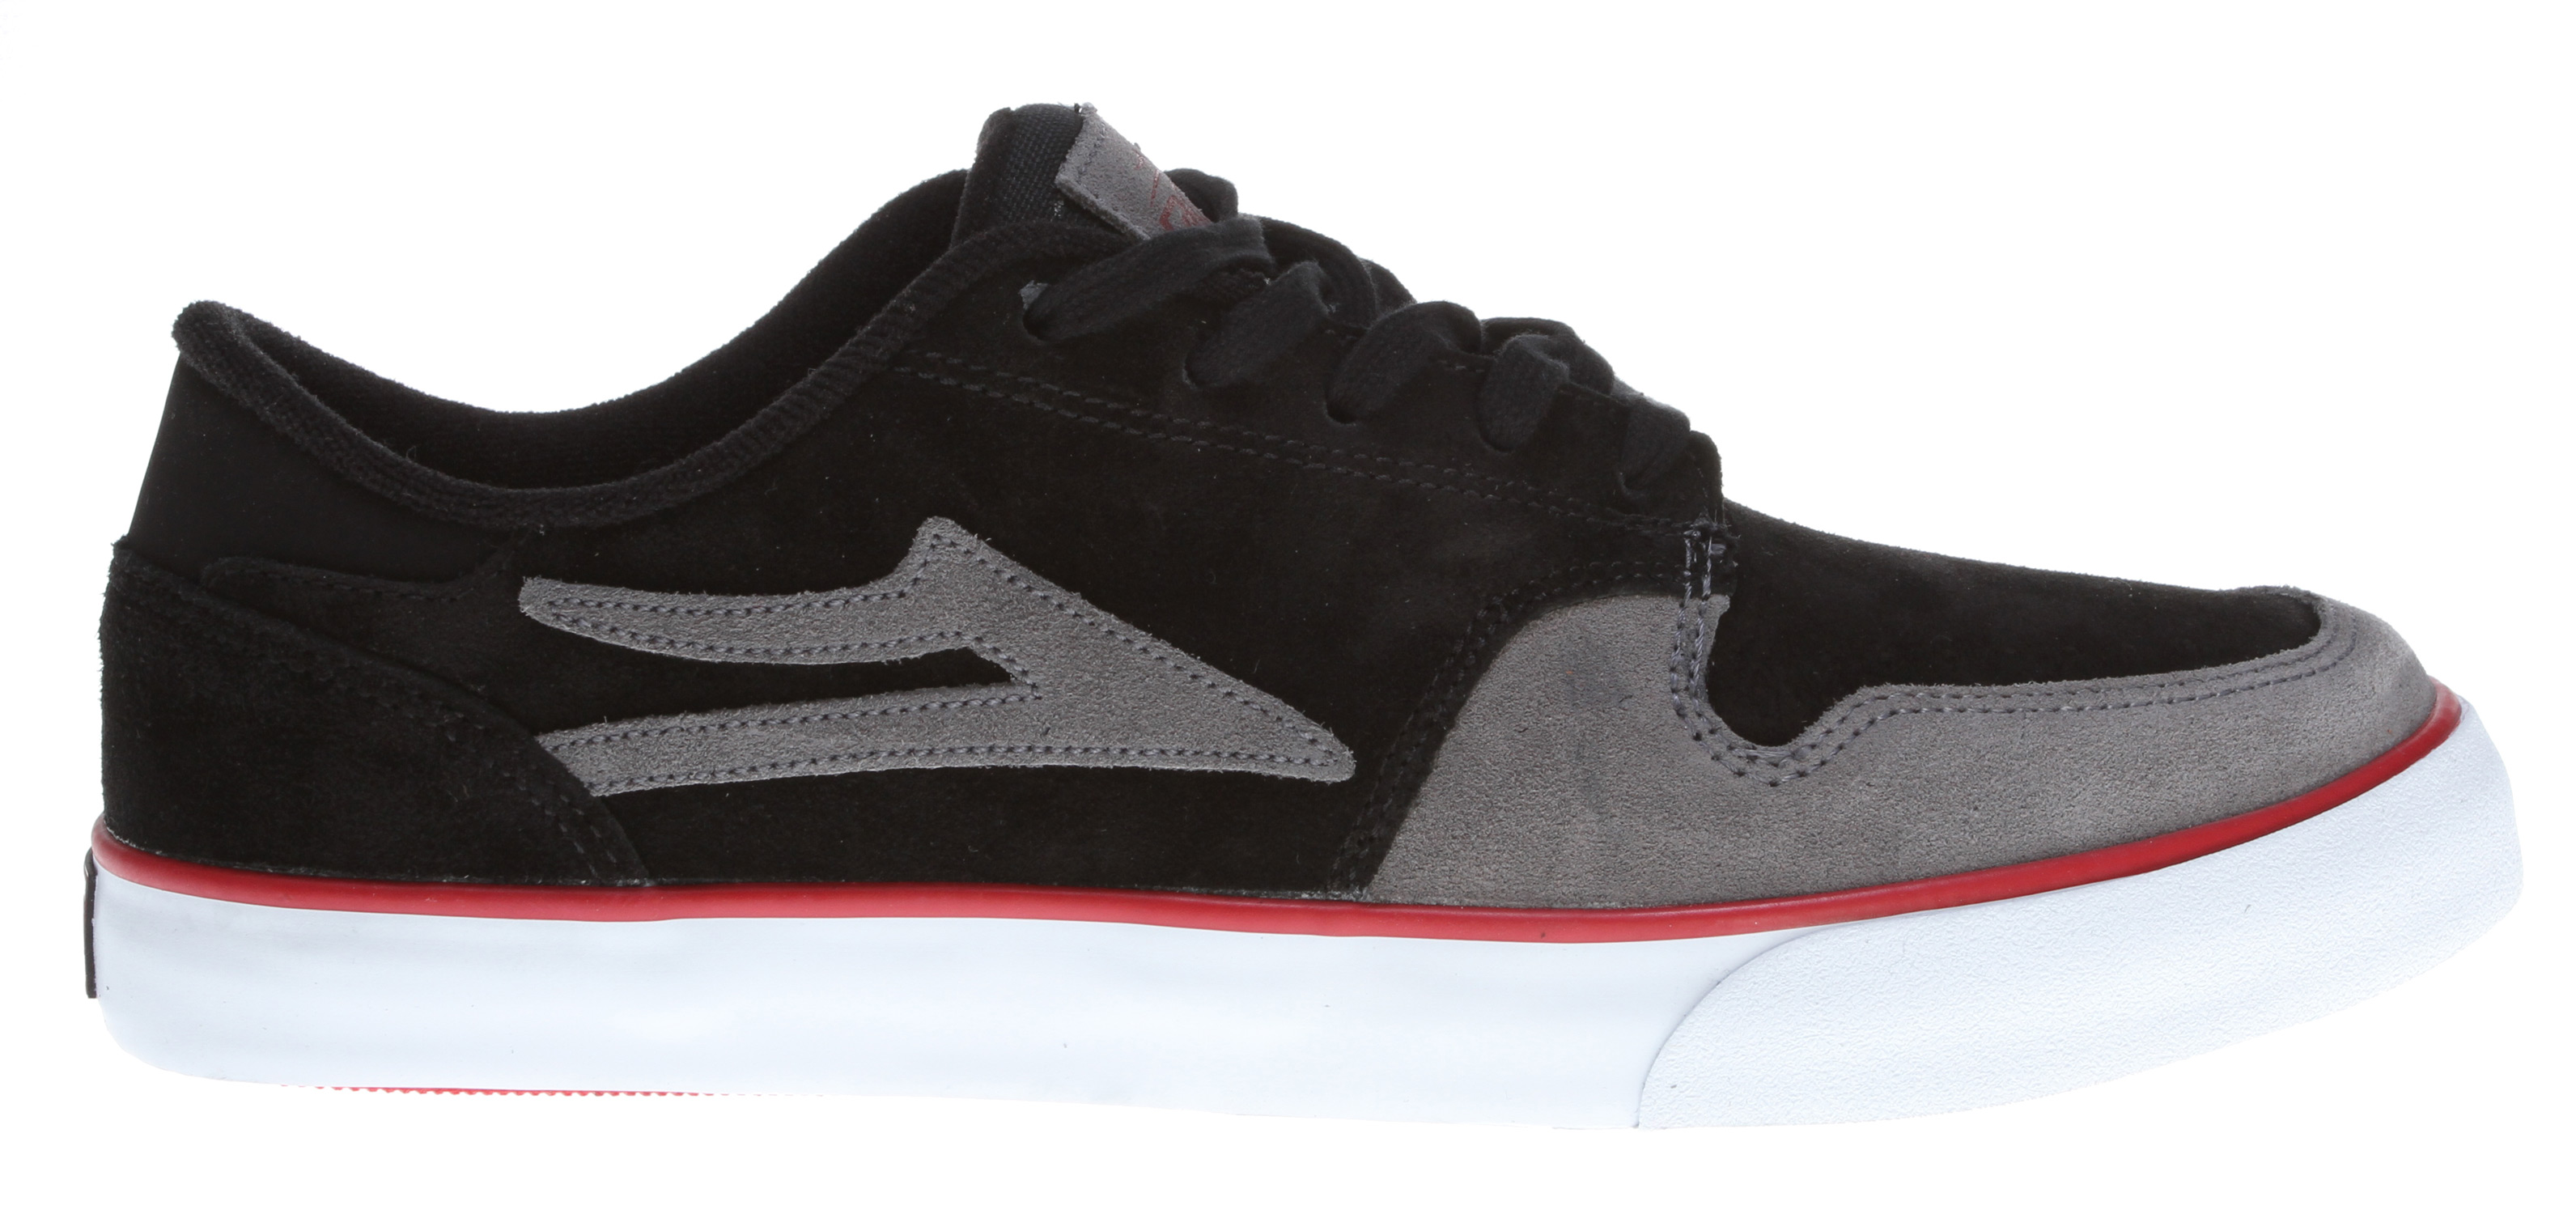 Skateboard Key Features of the Lakai Carroll 5 Skate Shoes: Flexible vulcanized construction Tacky gum rubber outsole Durable suede upper Form fitting upper for increased board feel Molded EVA shock absorbing insole Performance tested and approved by Mike Carroll - $42.95